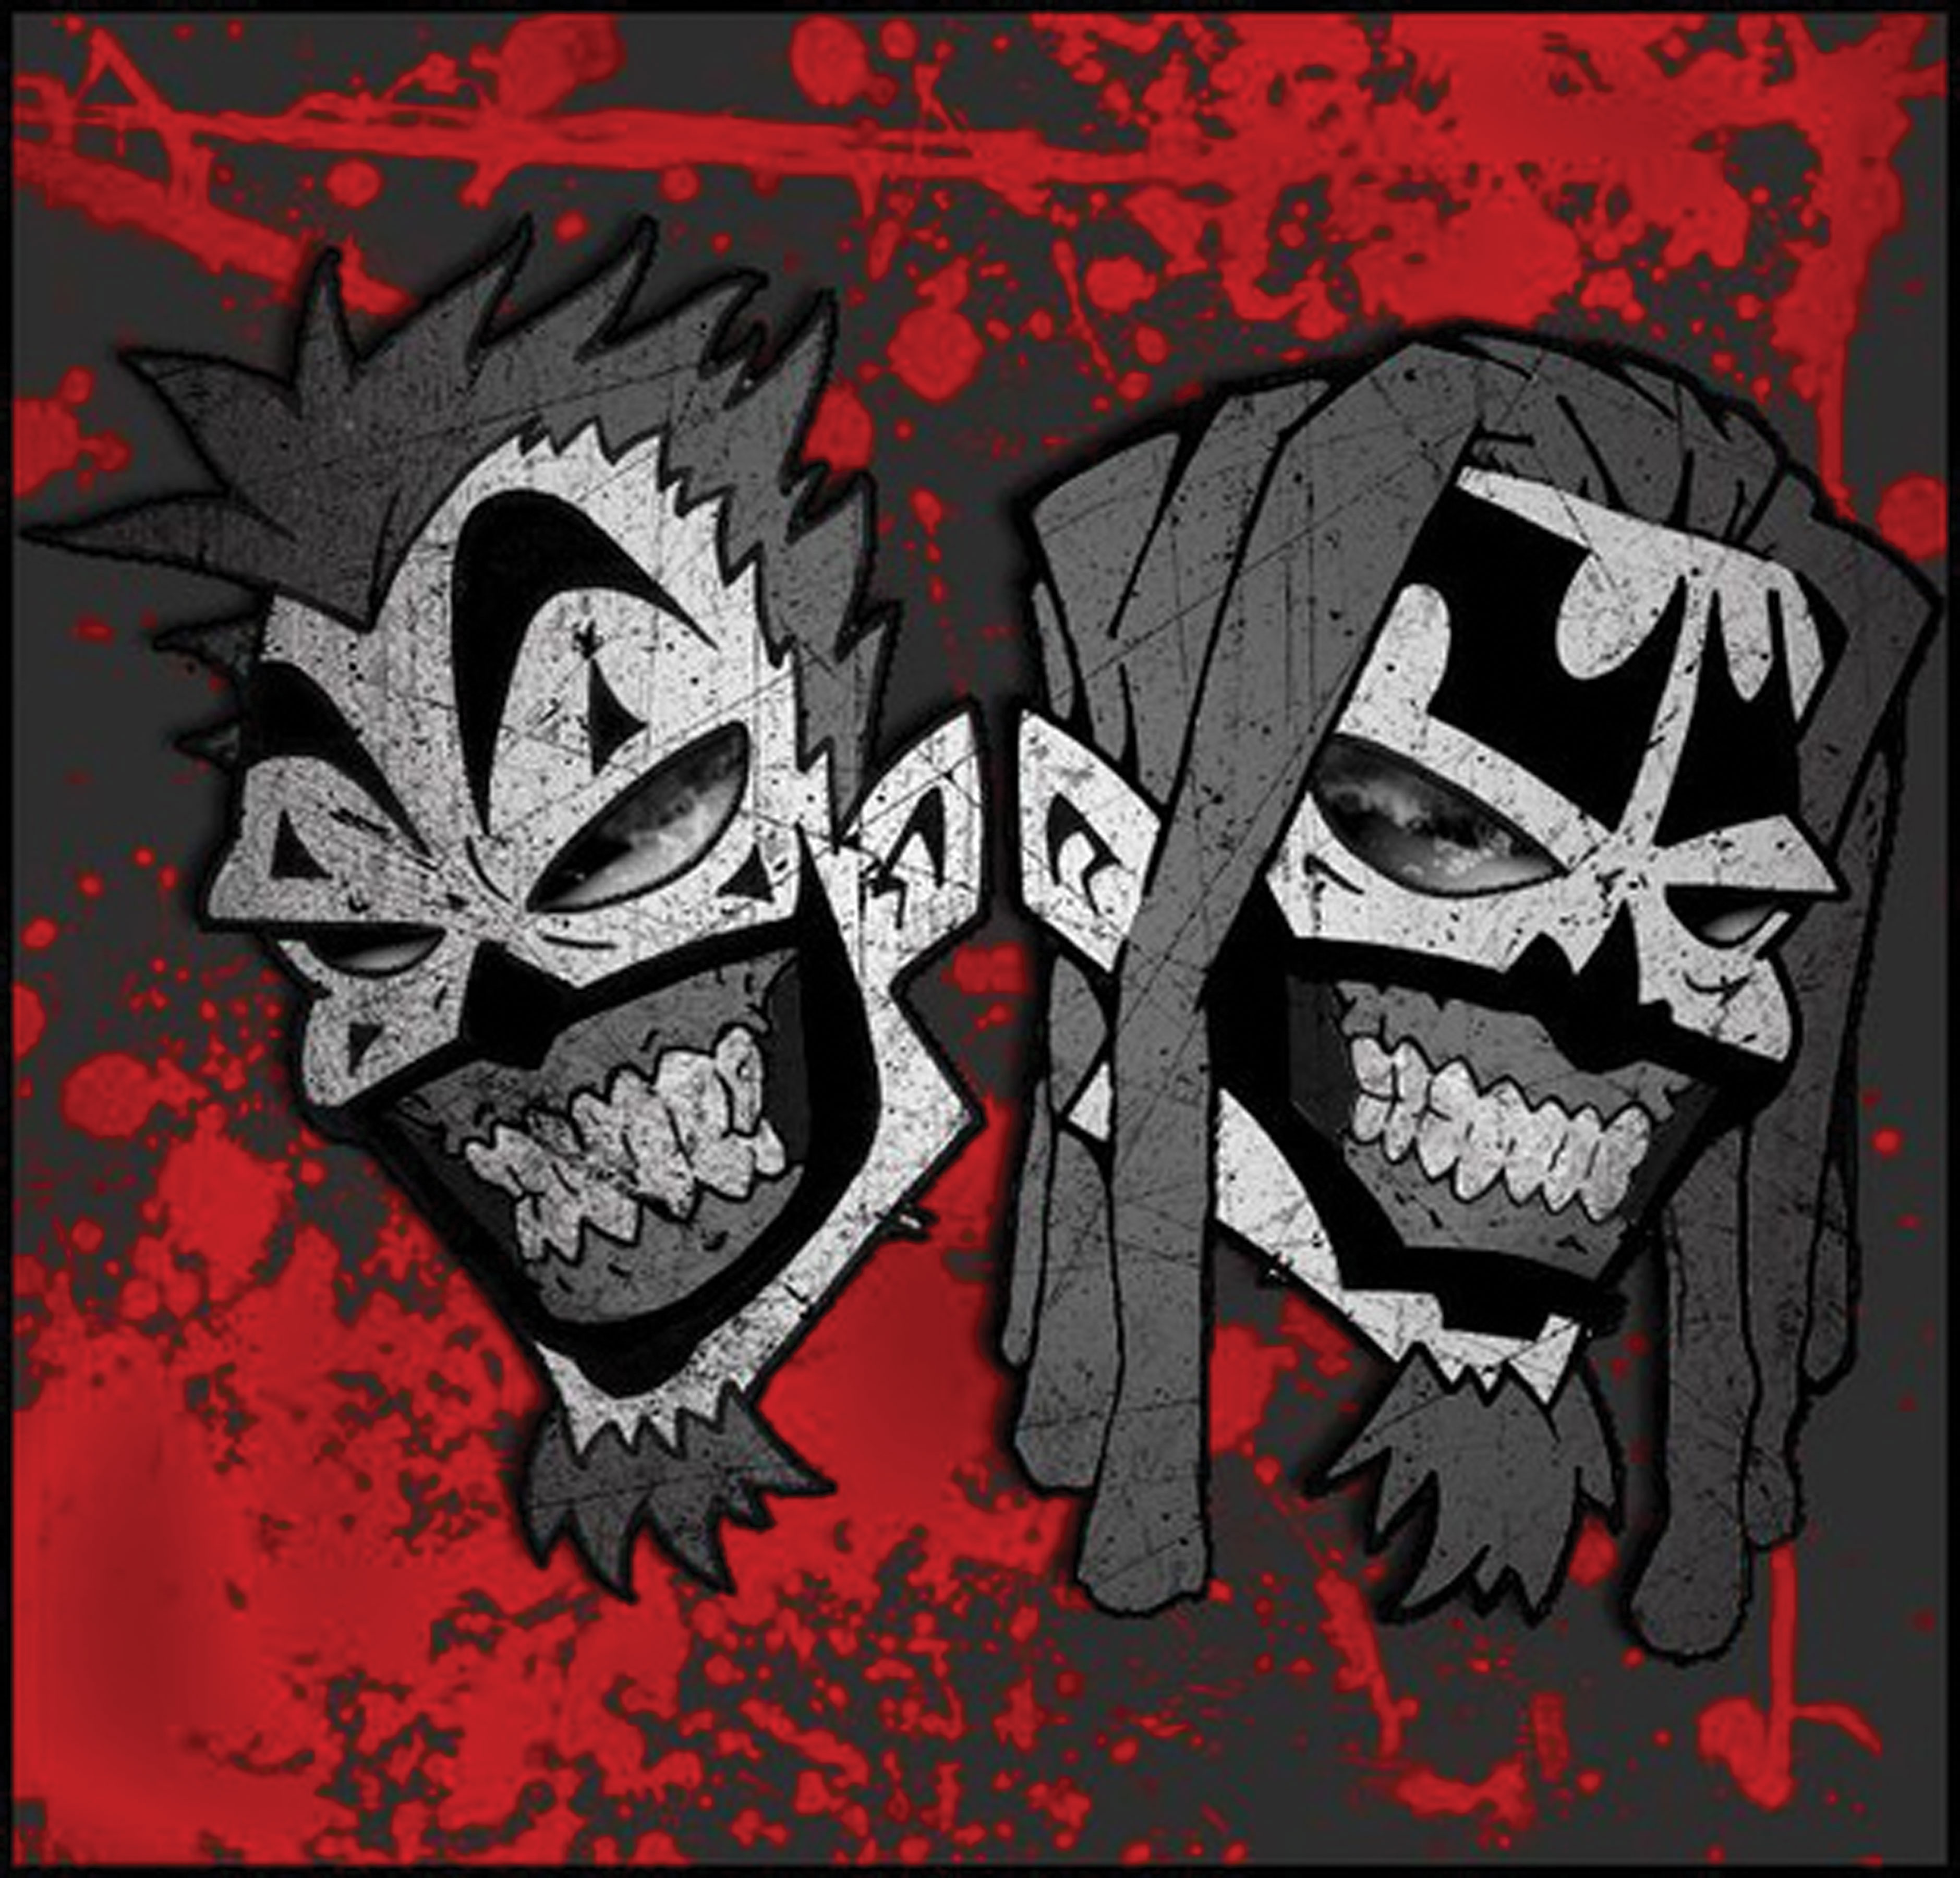 Juggalo Wallpaper: Juggalo Backgrounds